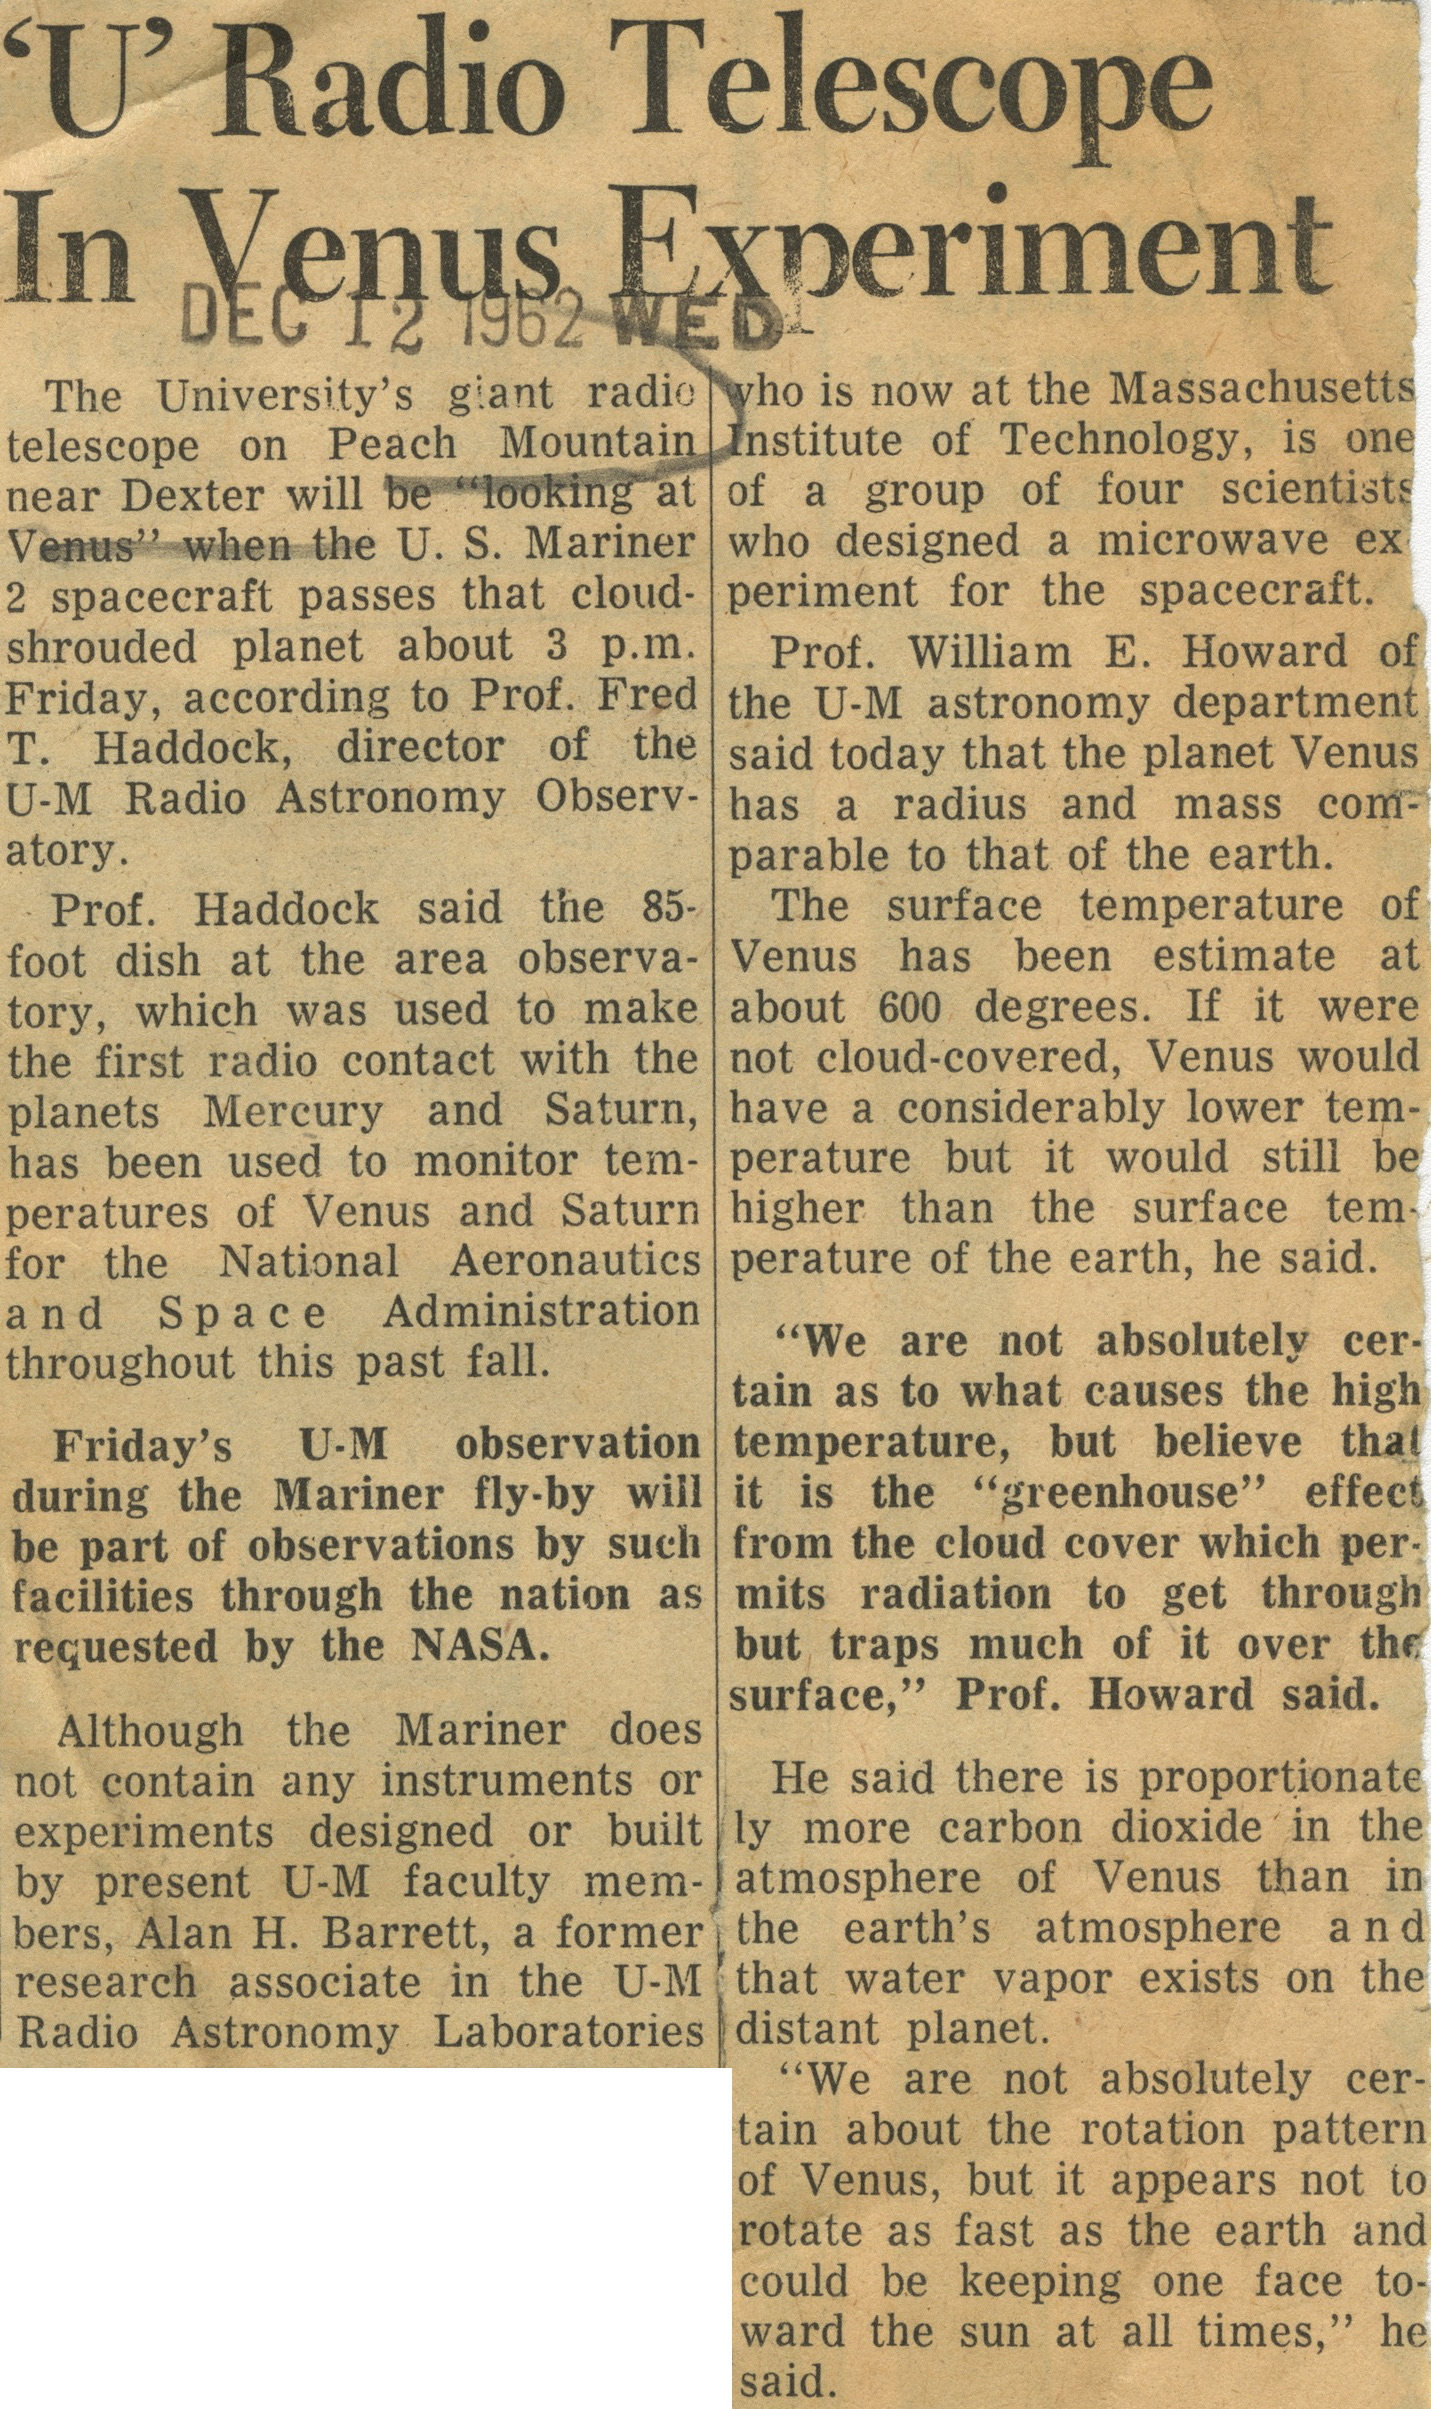 'U' Radio Telescope In Venus Experiment image